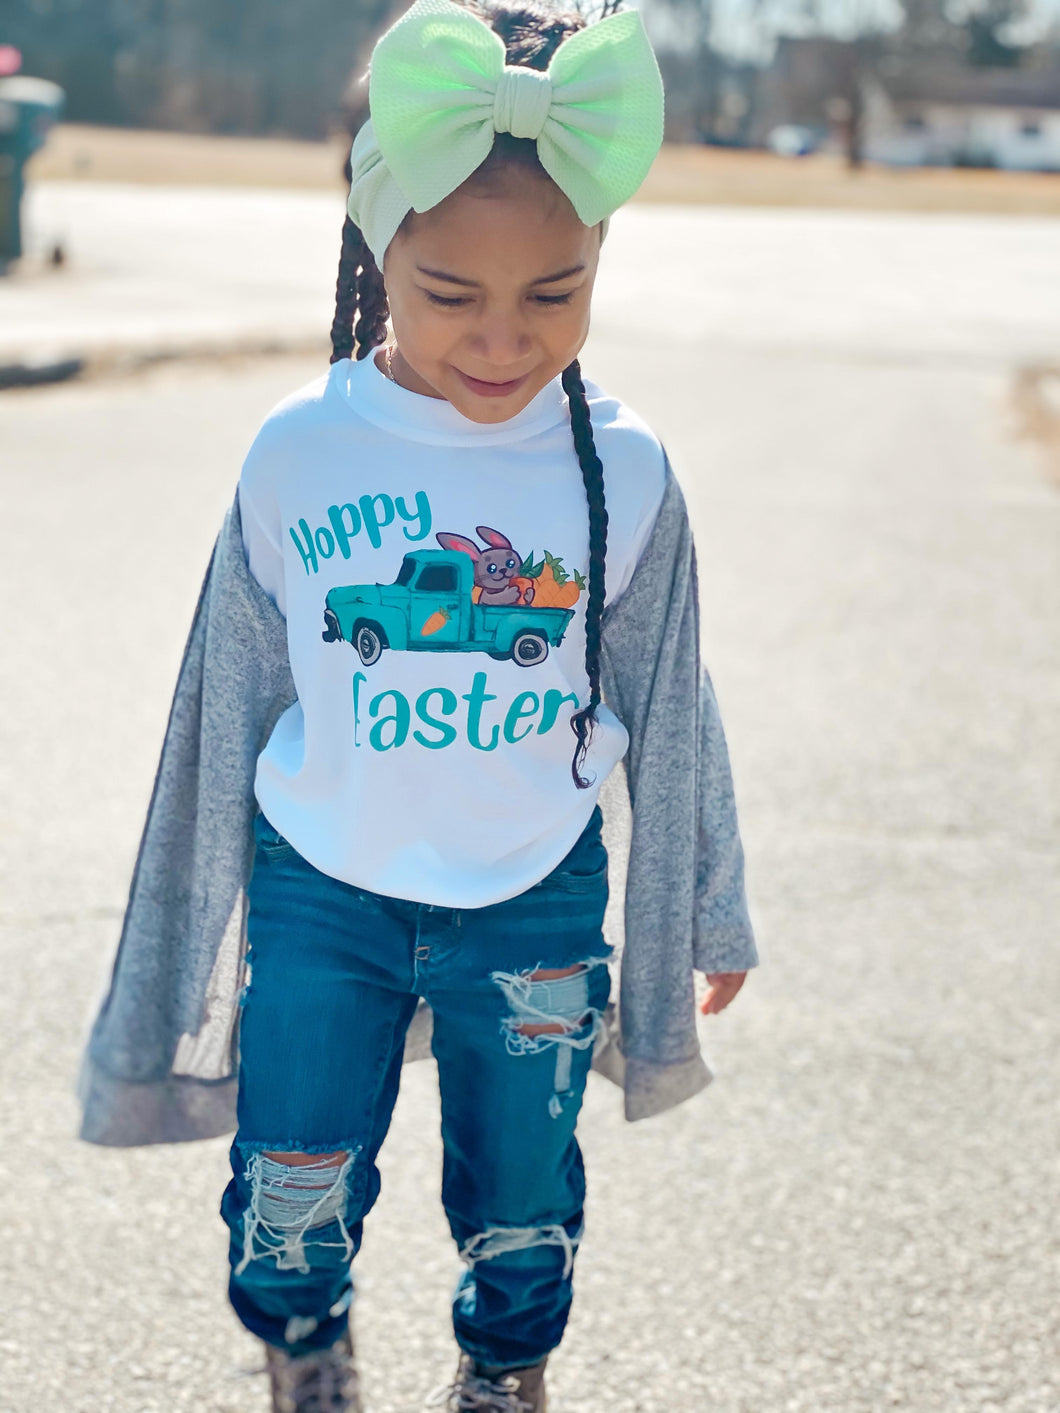 Hoppy Easter (Truck) Sublimation Shirt